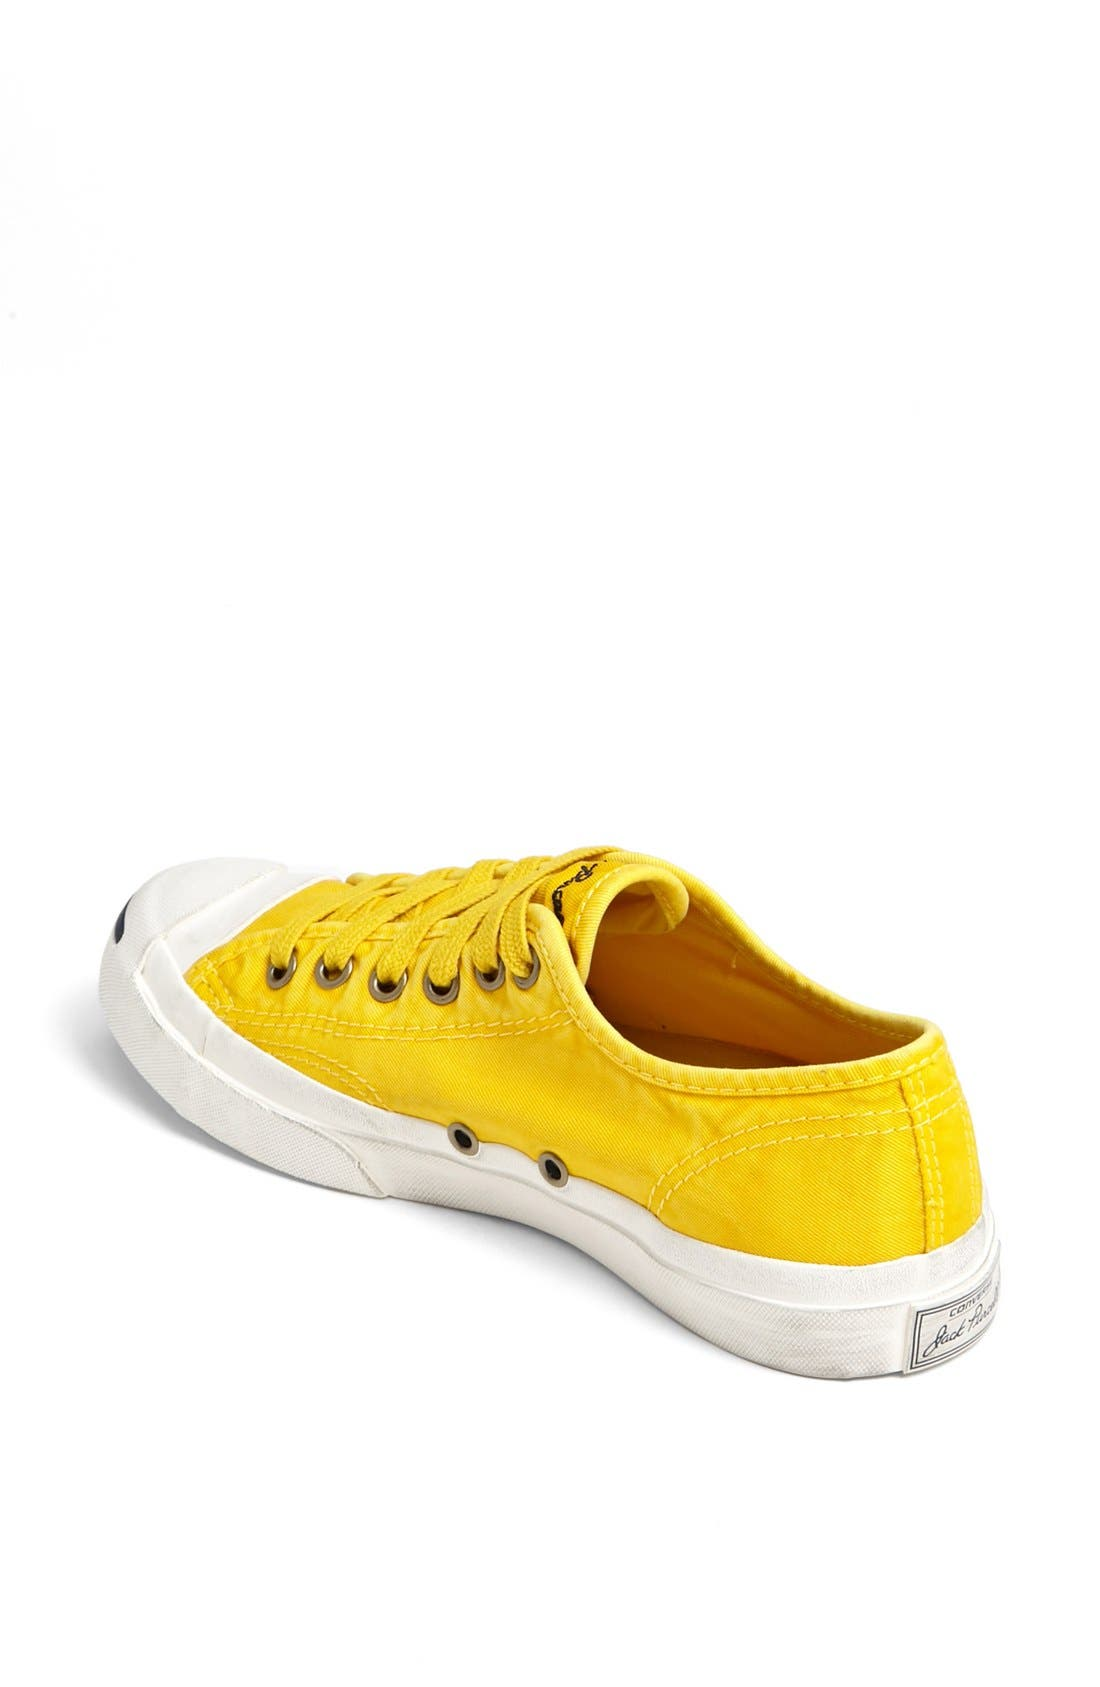 Alternate Image 2  - Converse 'Jack Purcell' Sneaker (Women)